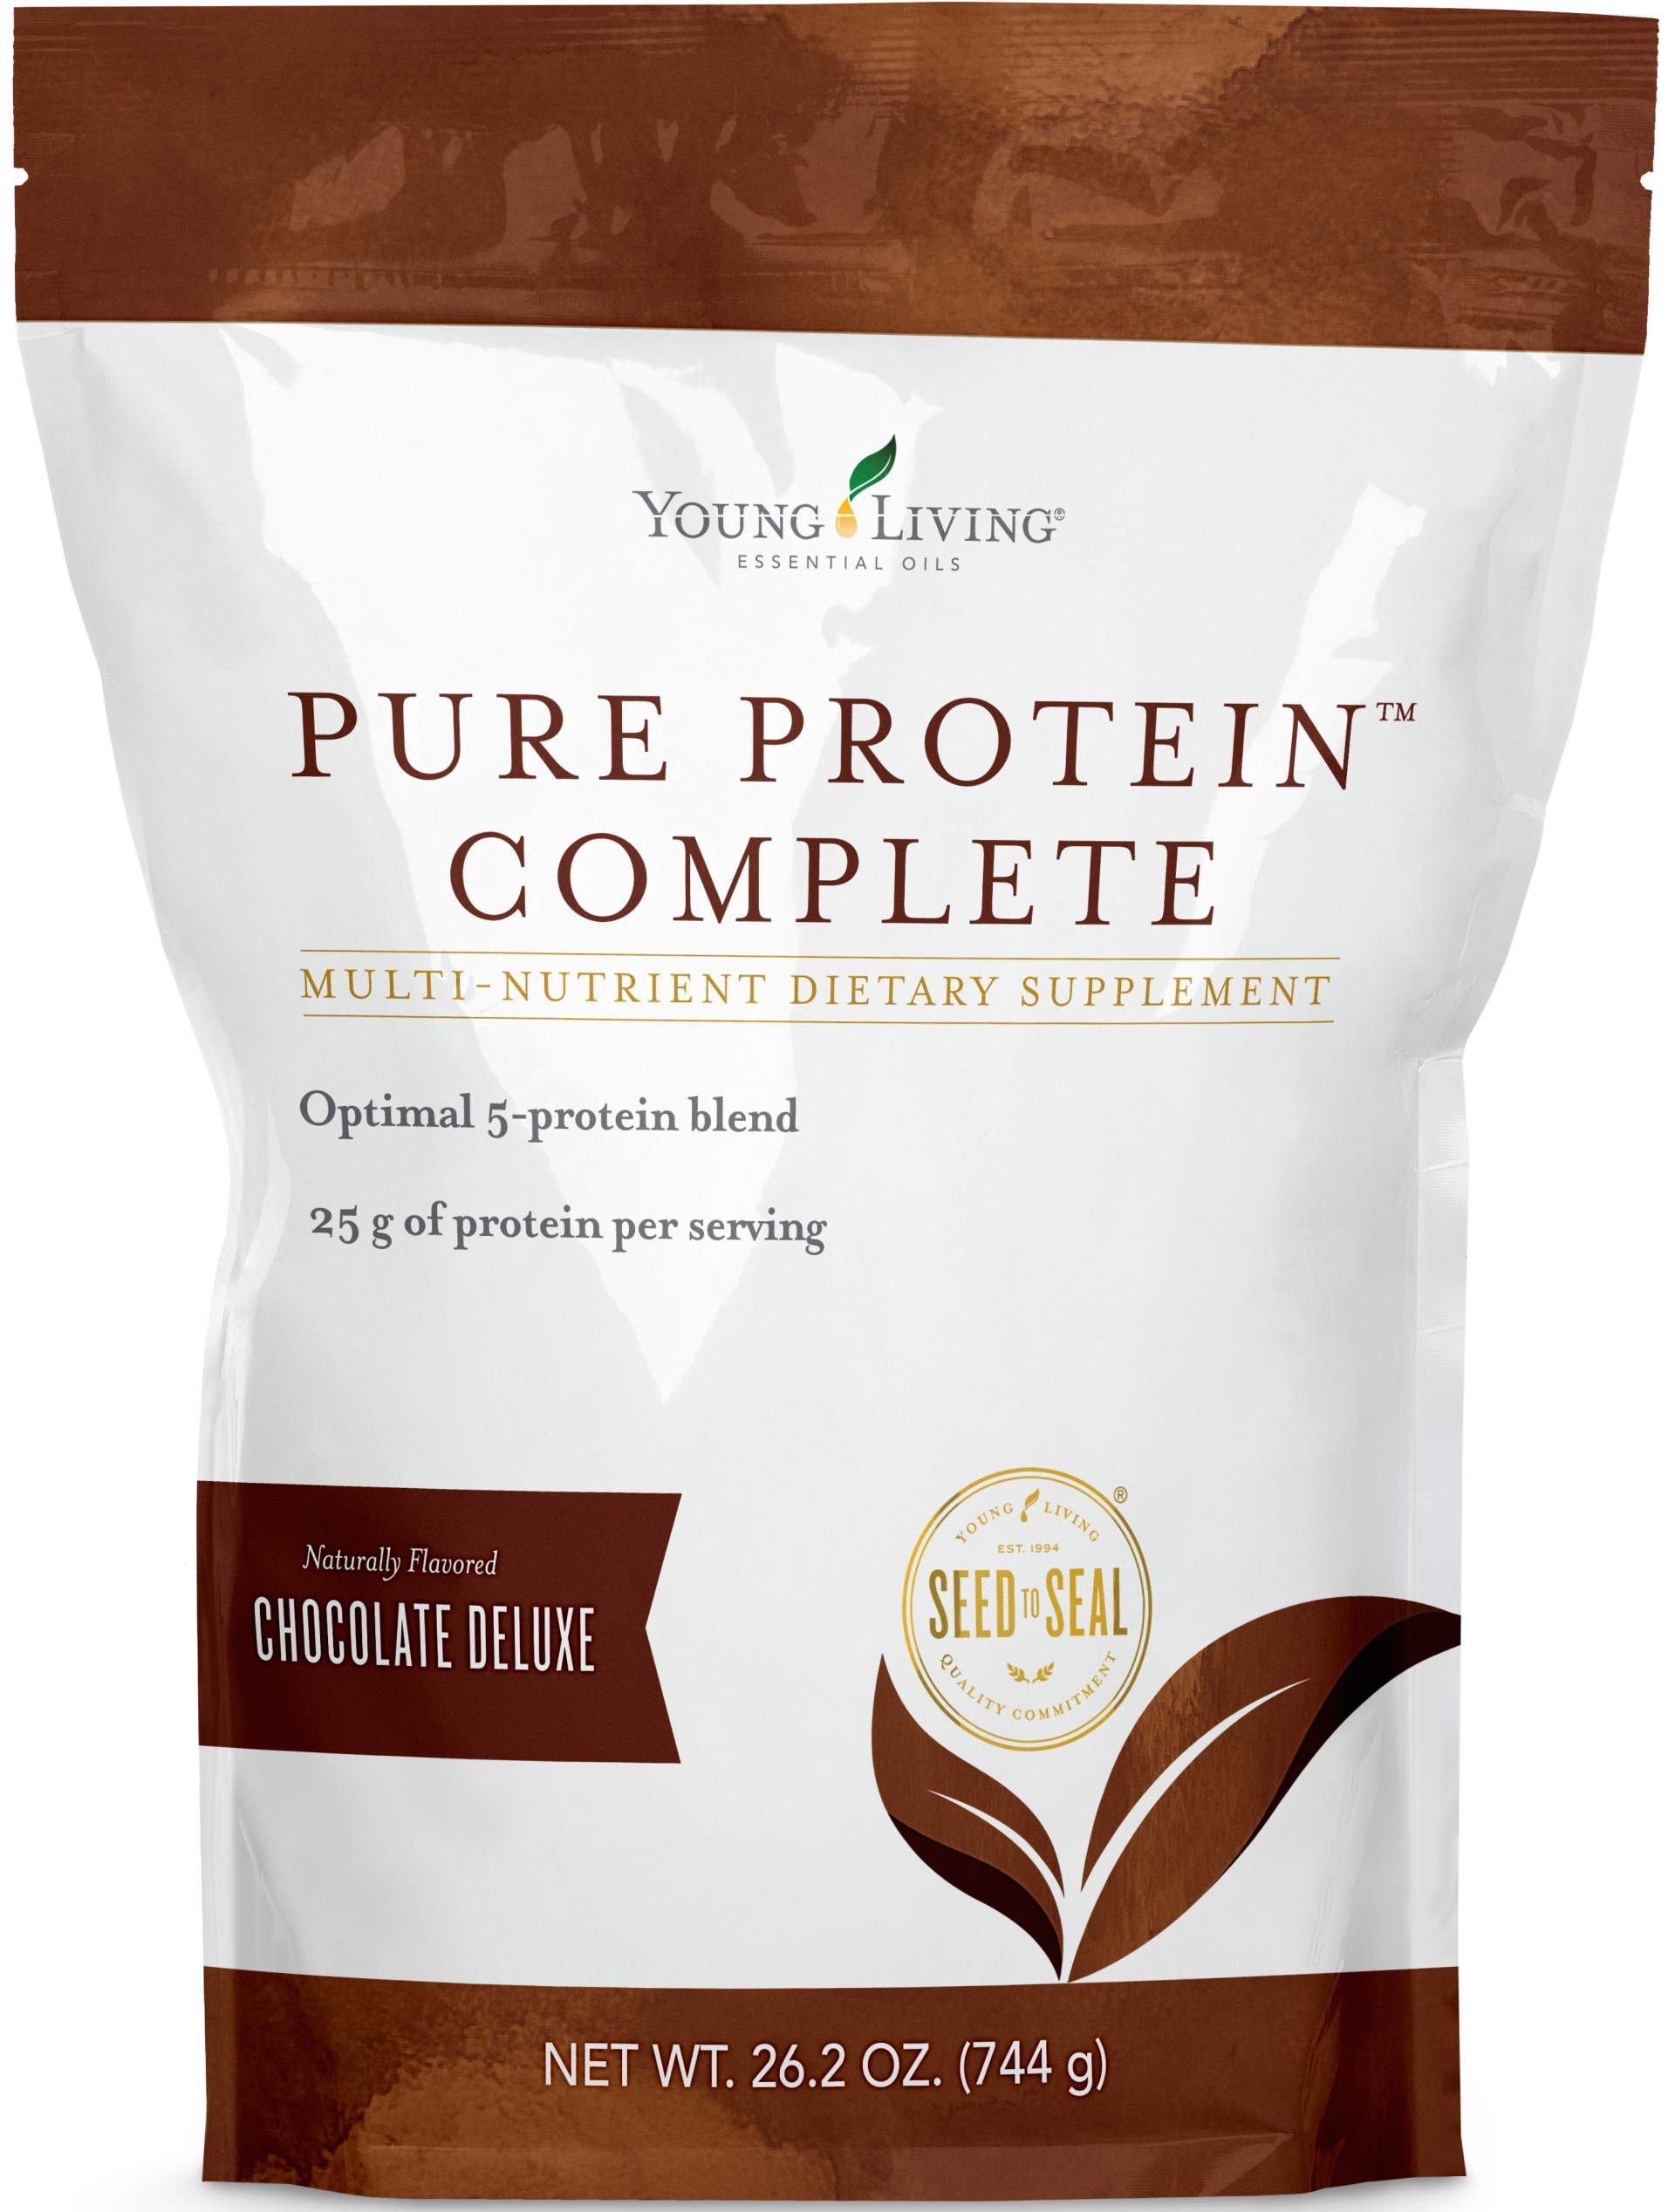 Chocolate Protein Powder | Young Living Protein Complete Deluxe Chocolate